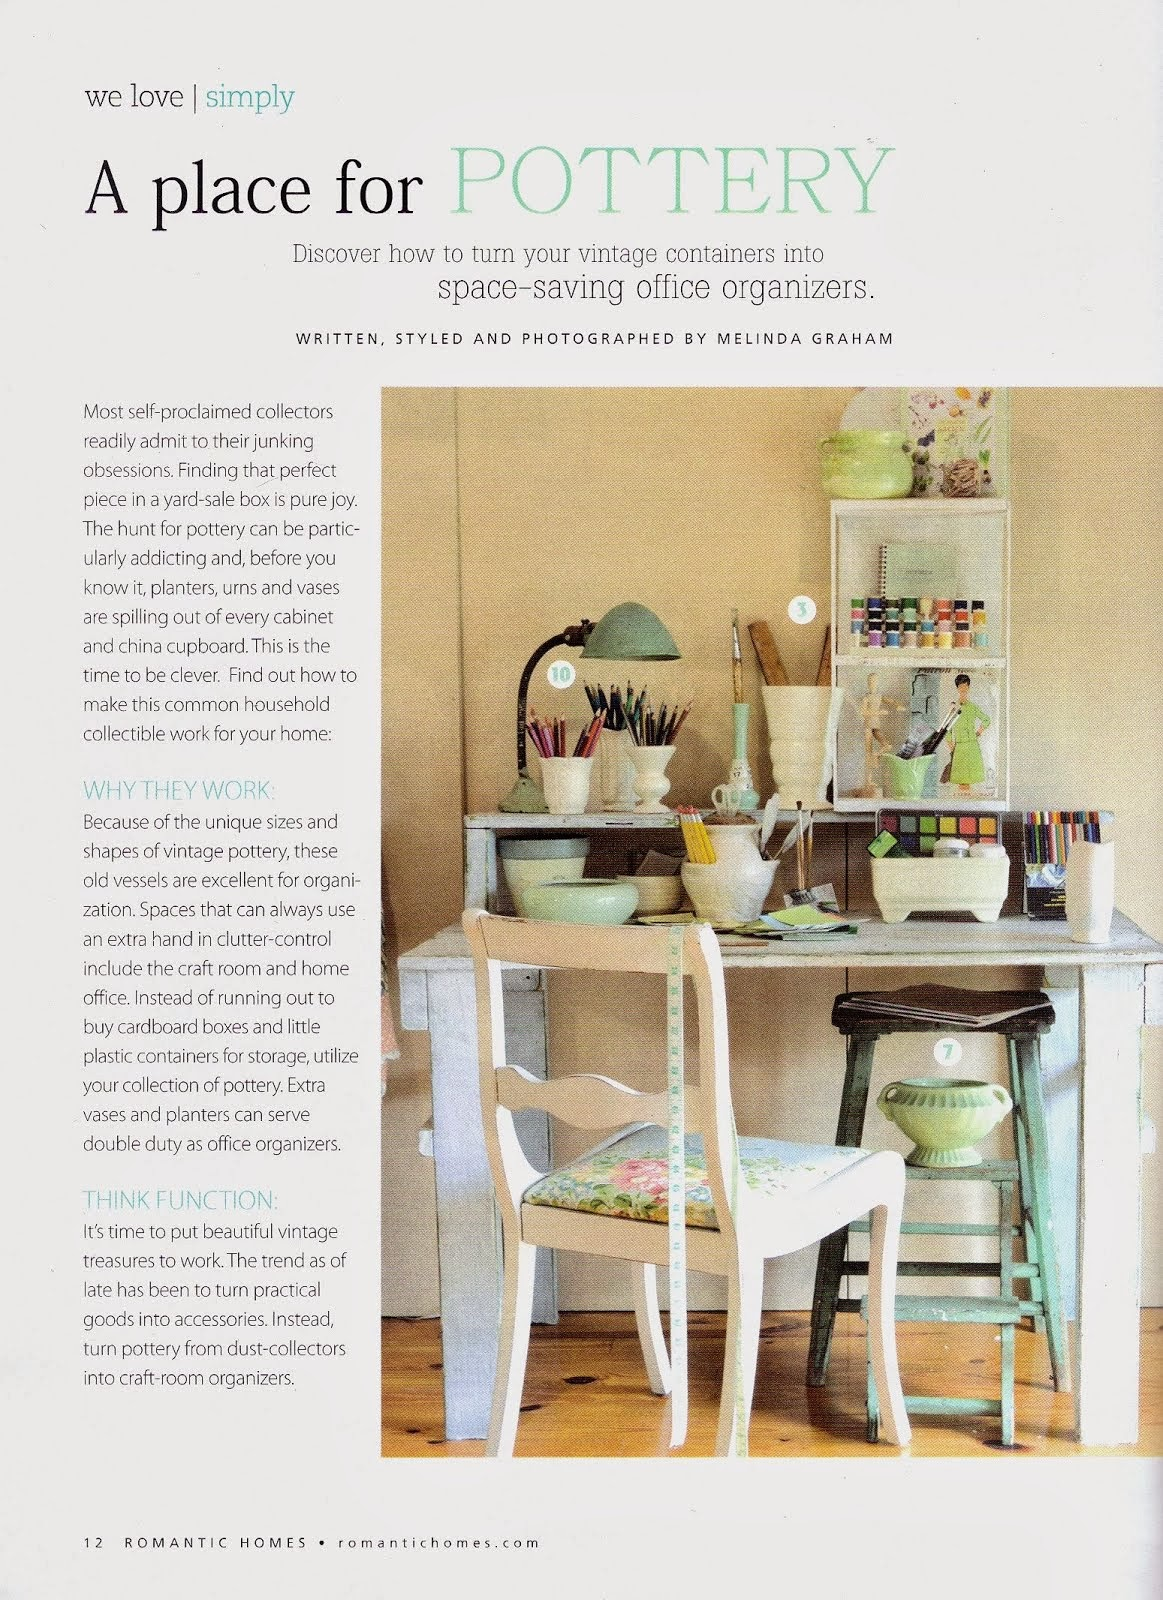 Romantic Homes Oct 2013